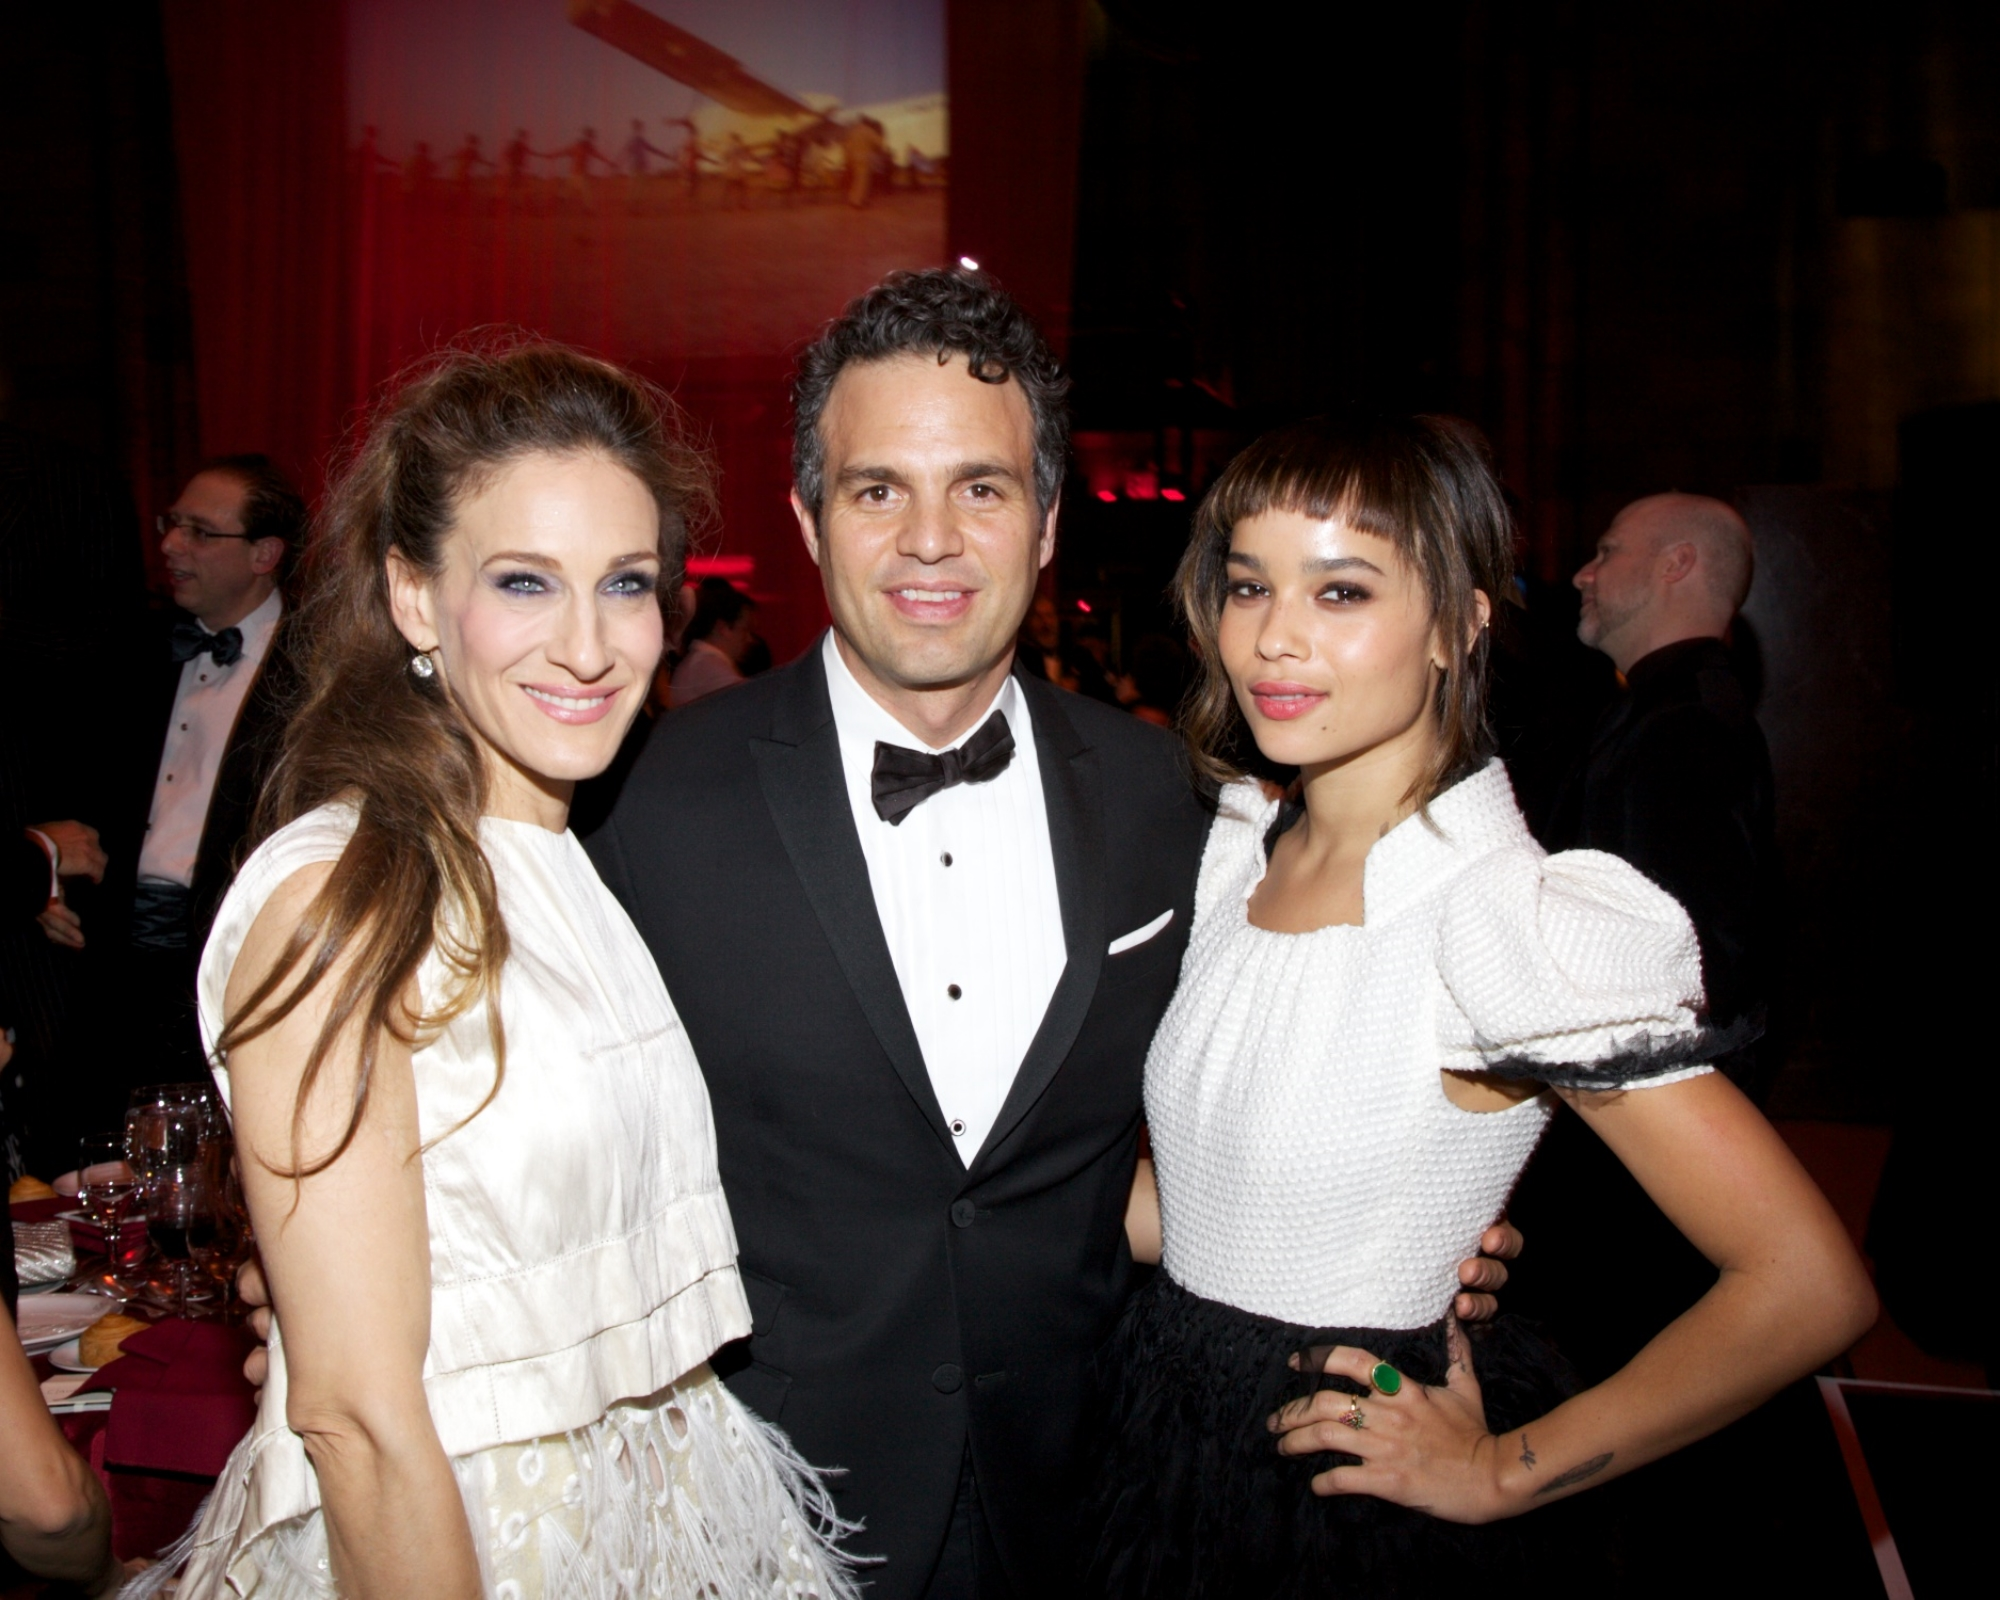 UNICEF Ambassador Sarah Jessica Parker, Mark Ruffalo, and Zoe Kravitz ©2011 Julie Skarratt Photography, Inc./U.S. Fund for UNICEF